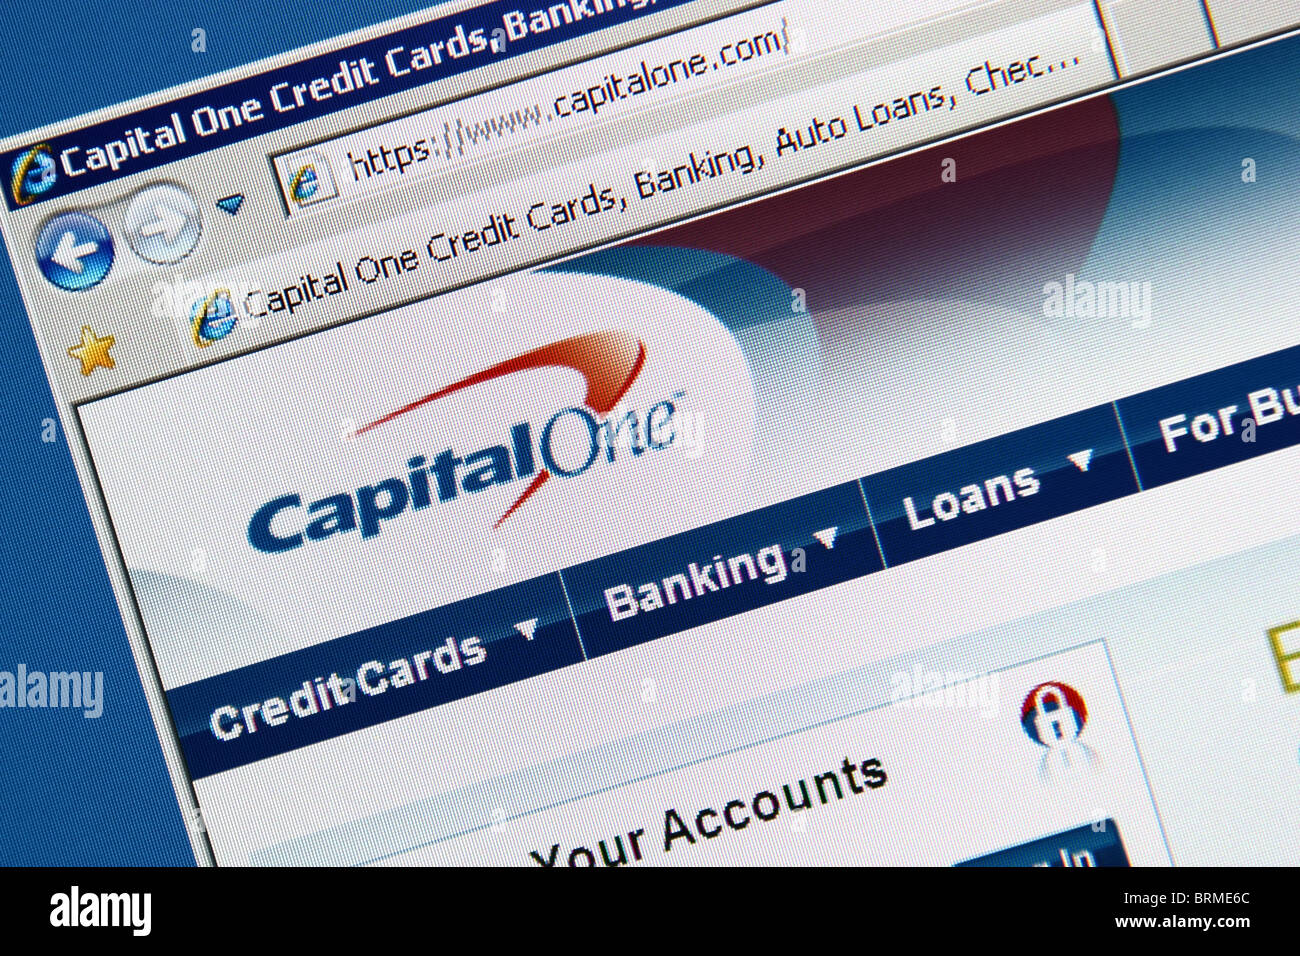 Capital one credit card banking online